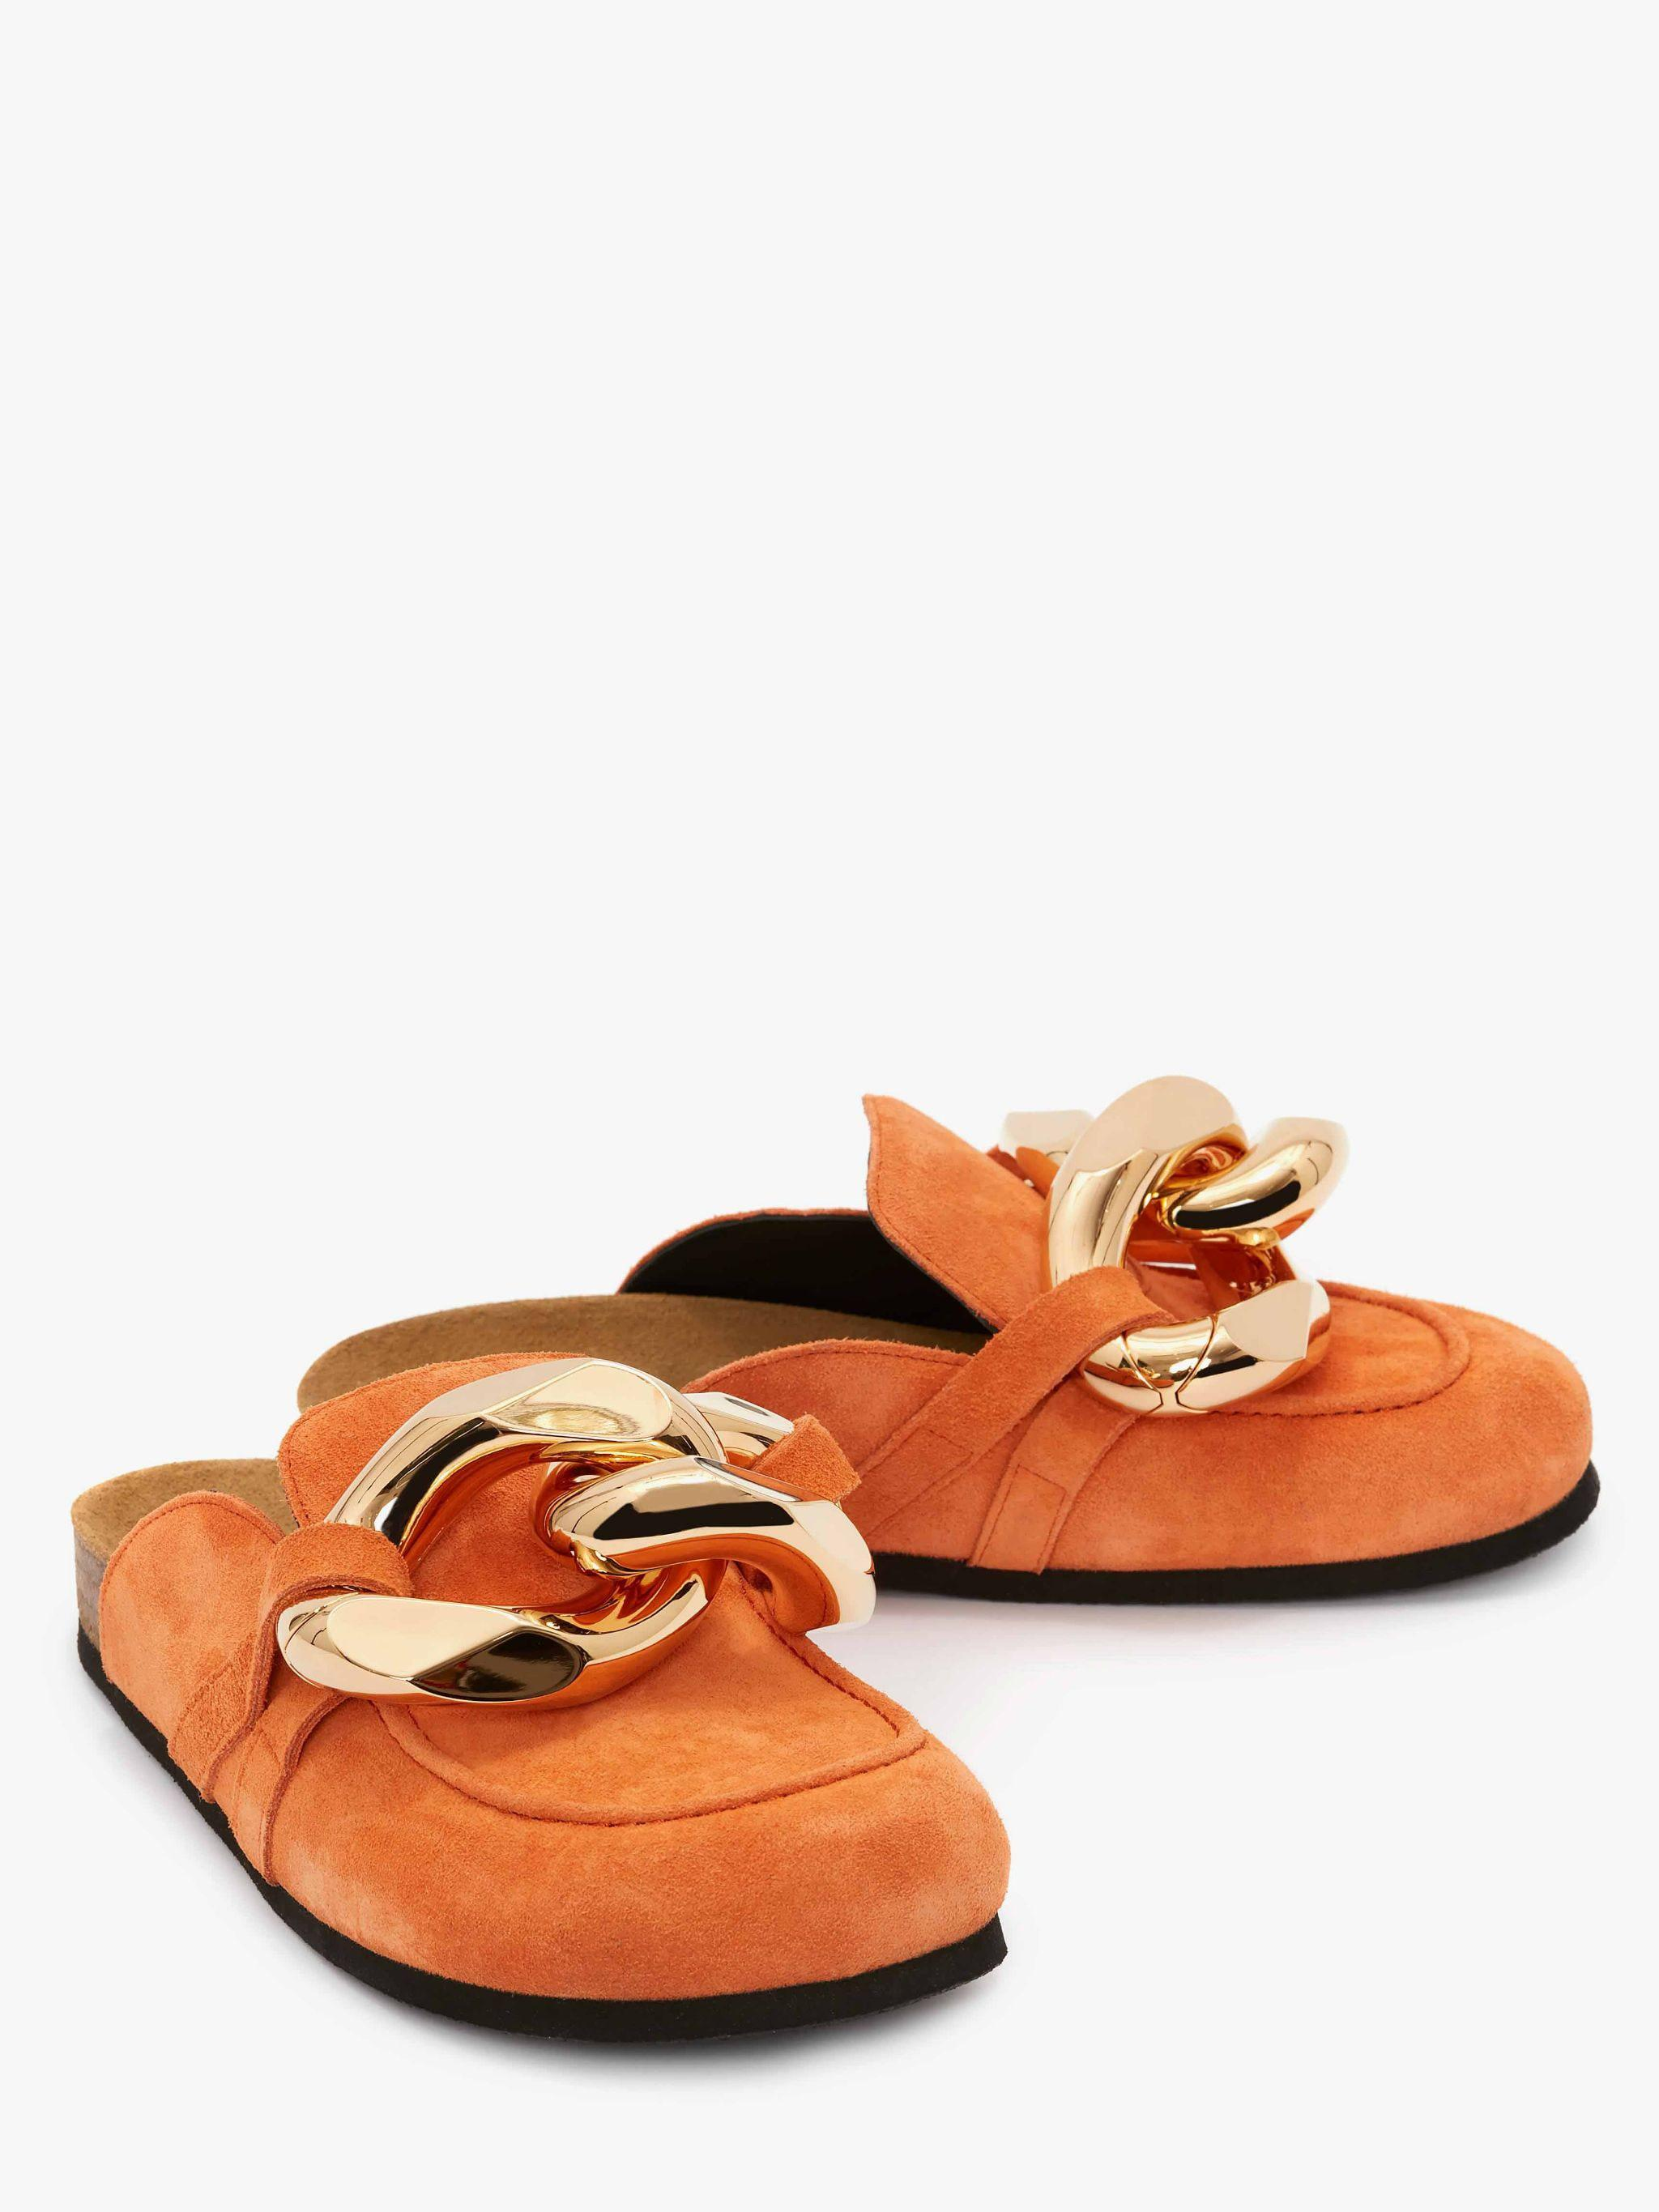 WOMEN'S CHAIN LOAFER - SUEDE 1